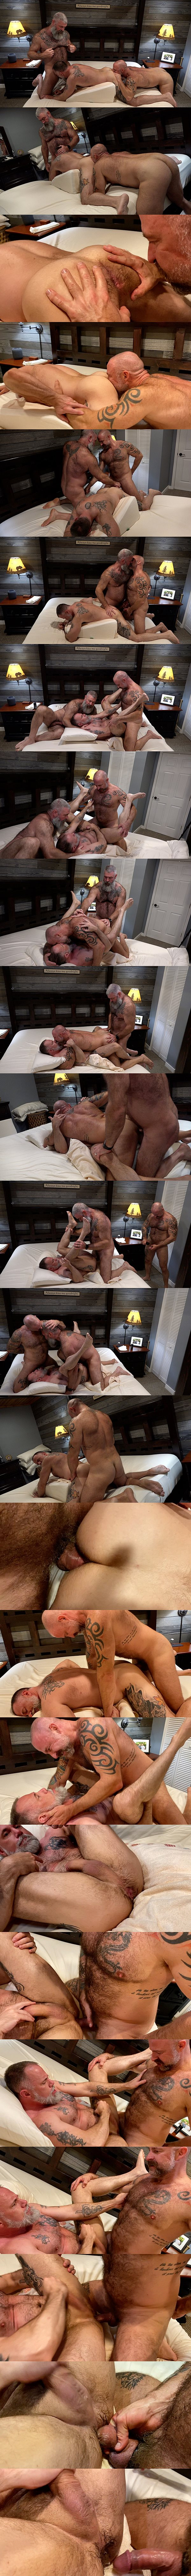 Will Angell barebacks Musclebear Montreal and Liam Angell before Montreal creampies Liam in Montreal's bottoming debut in Muscle Bear Cum Fest at Musclebearporn 01